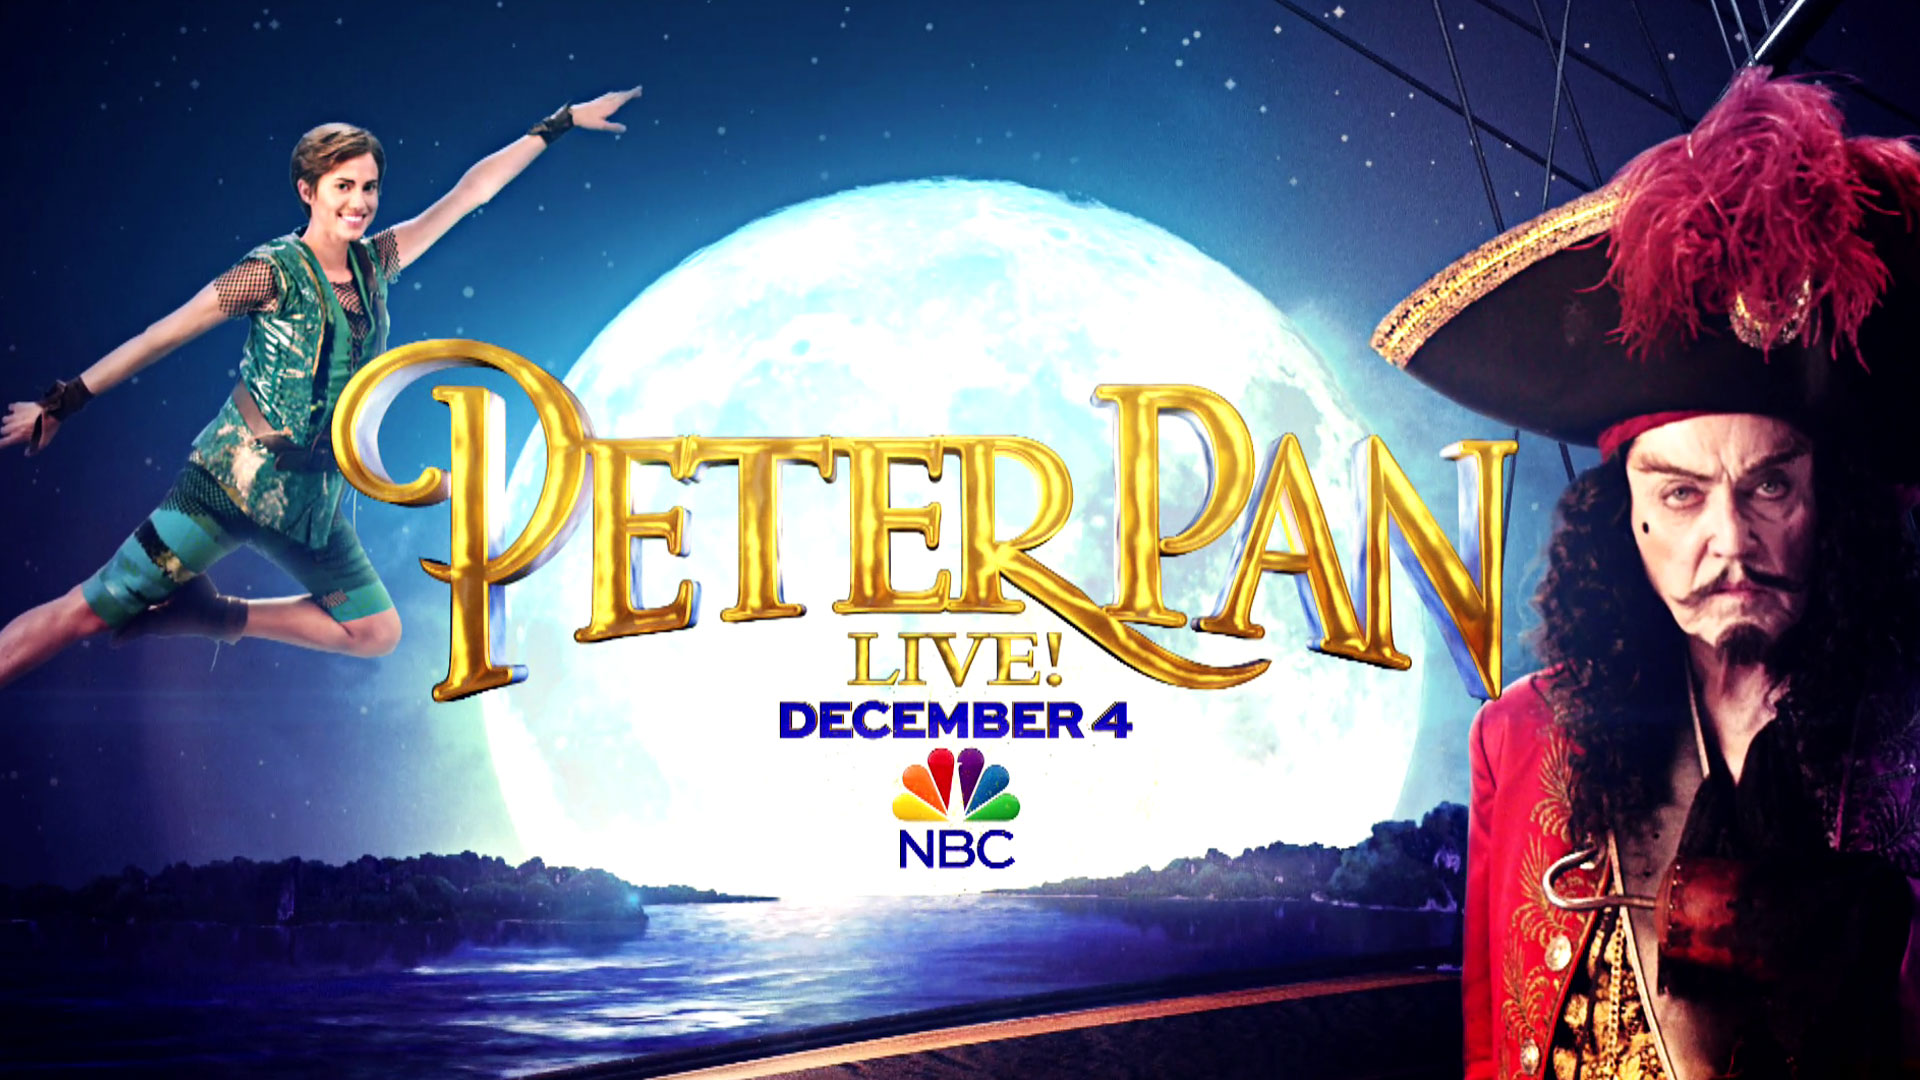 Peter Pan Sex Porn Good peter pan live' was 'oddly awful.' what nbc needs to do to have